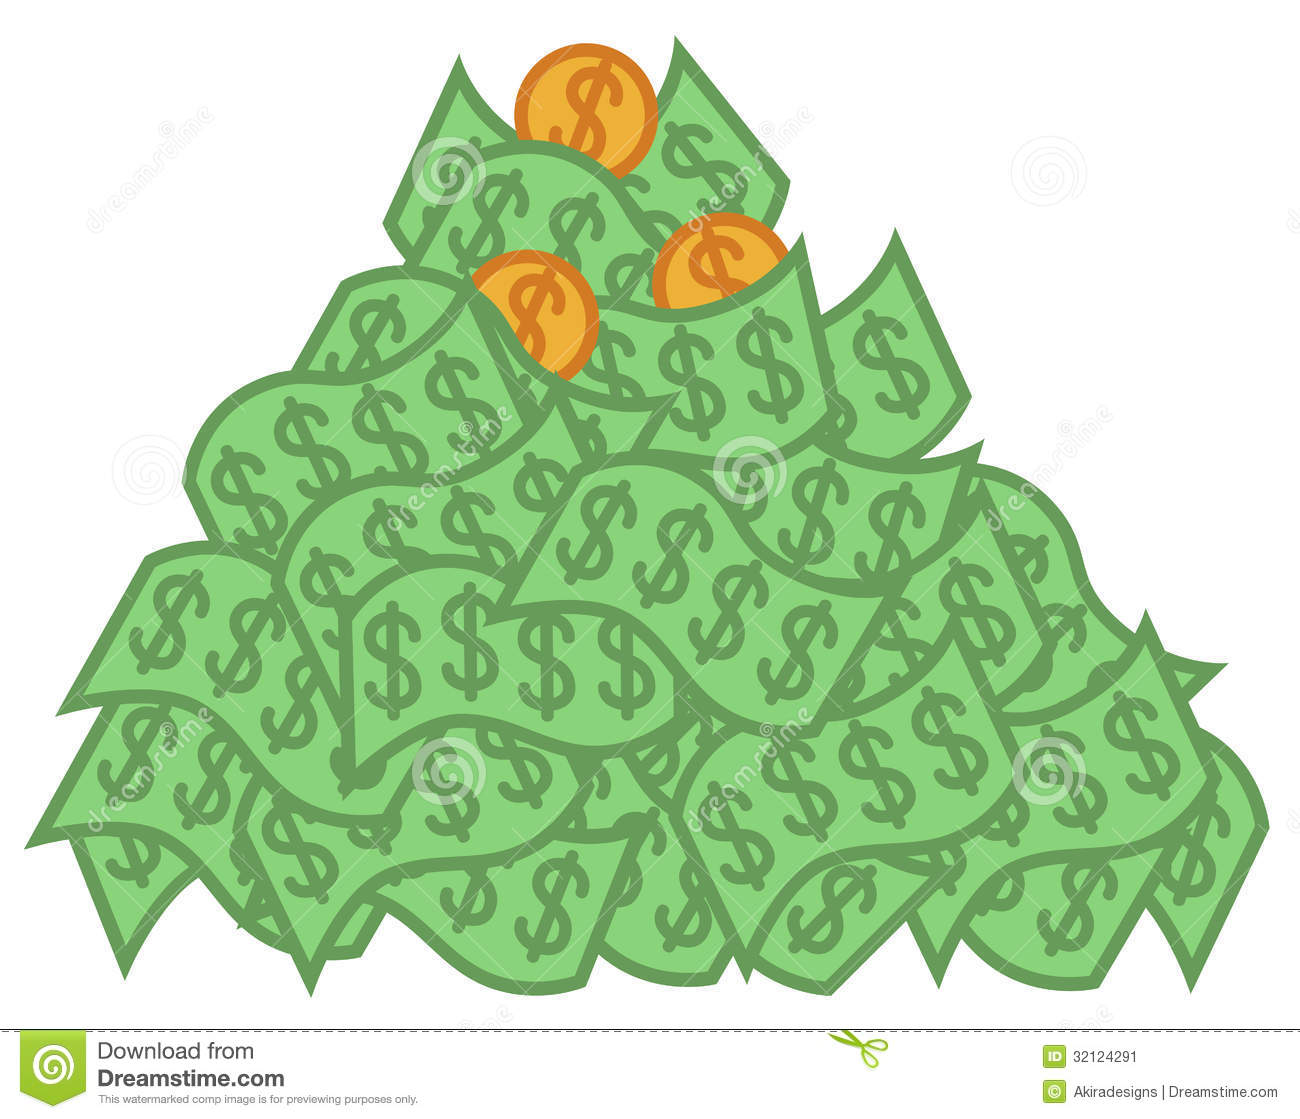 Cartoon vector illustration of big pile of money.